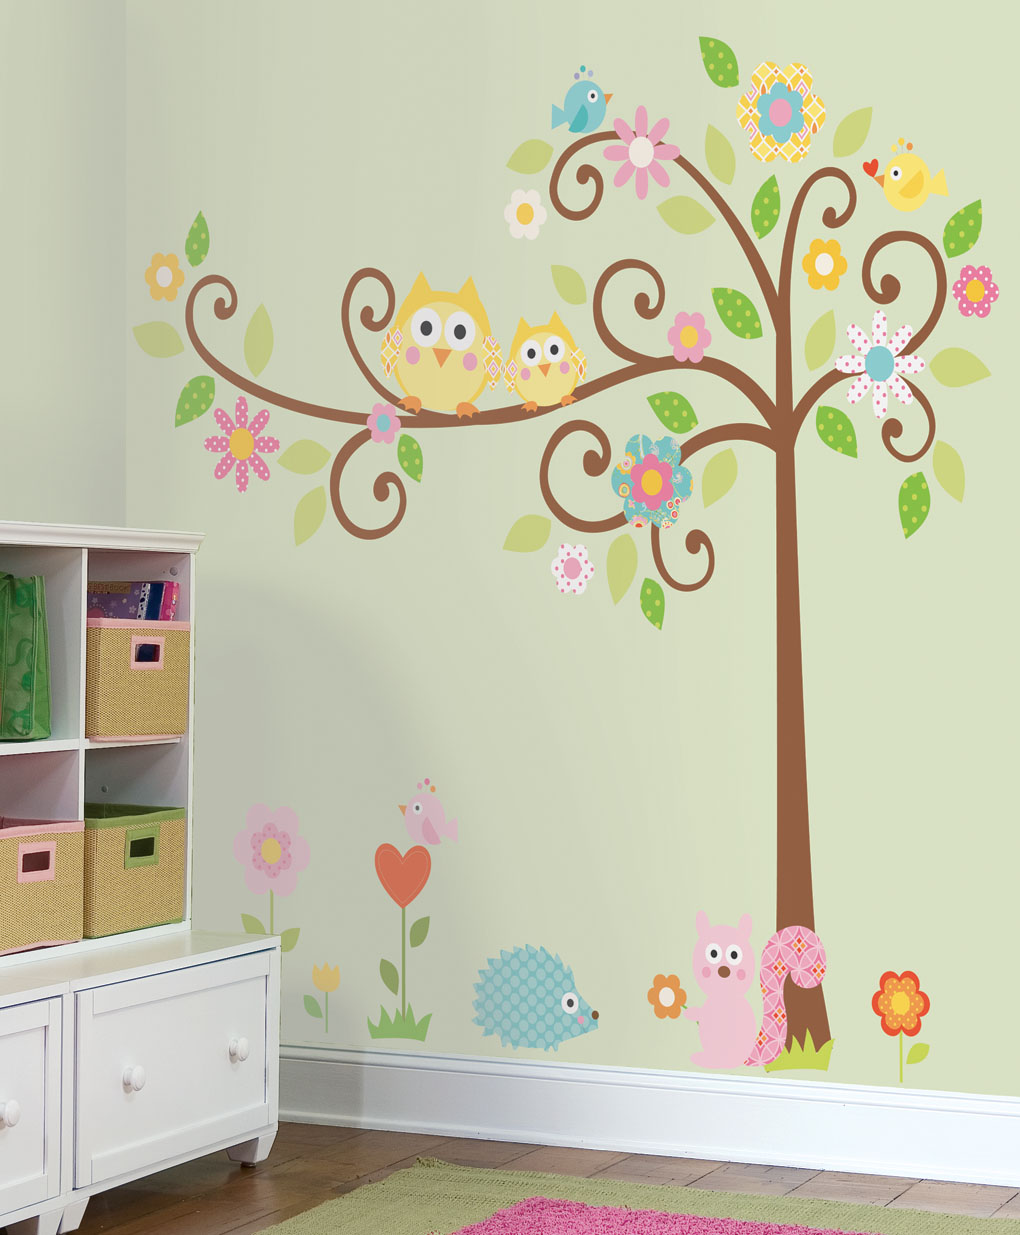 Wall Decals Kids Art Wall Decor